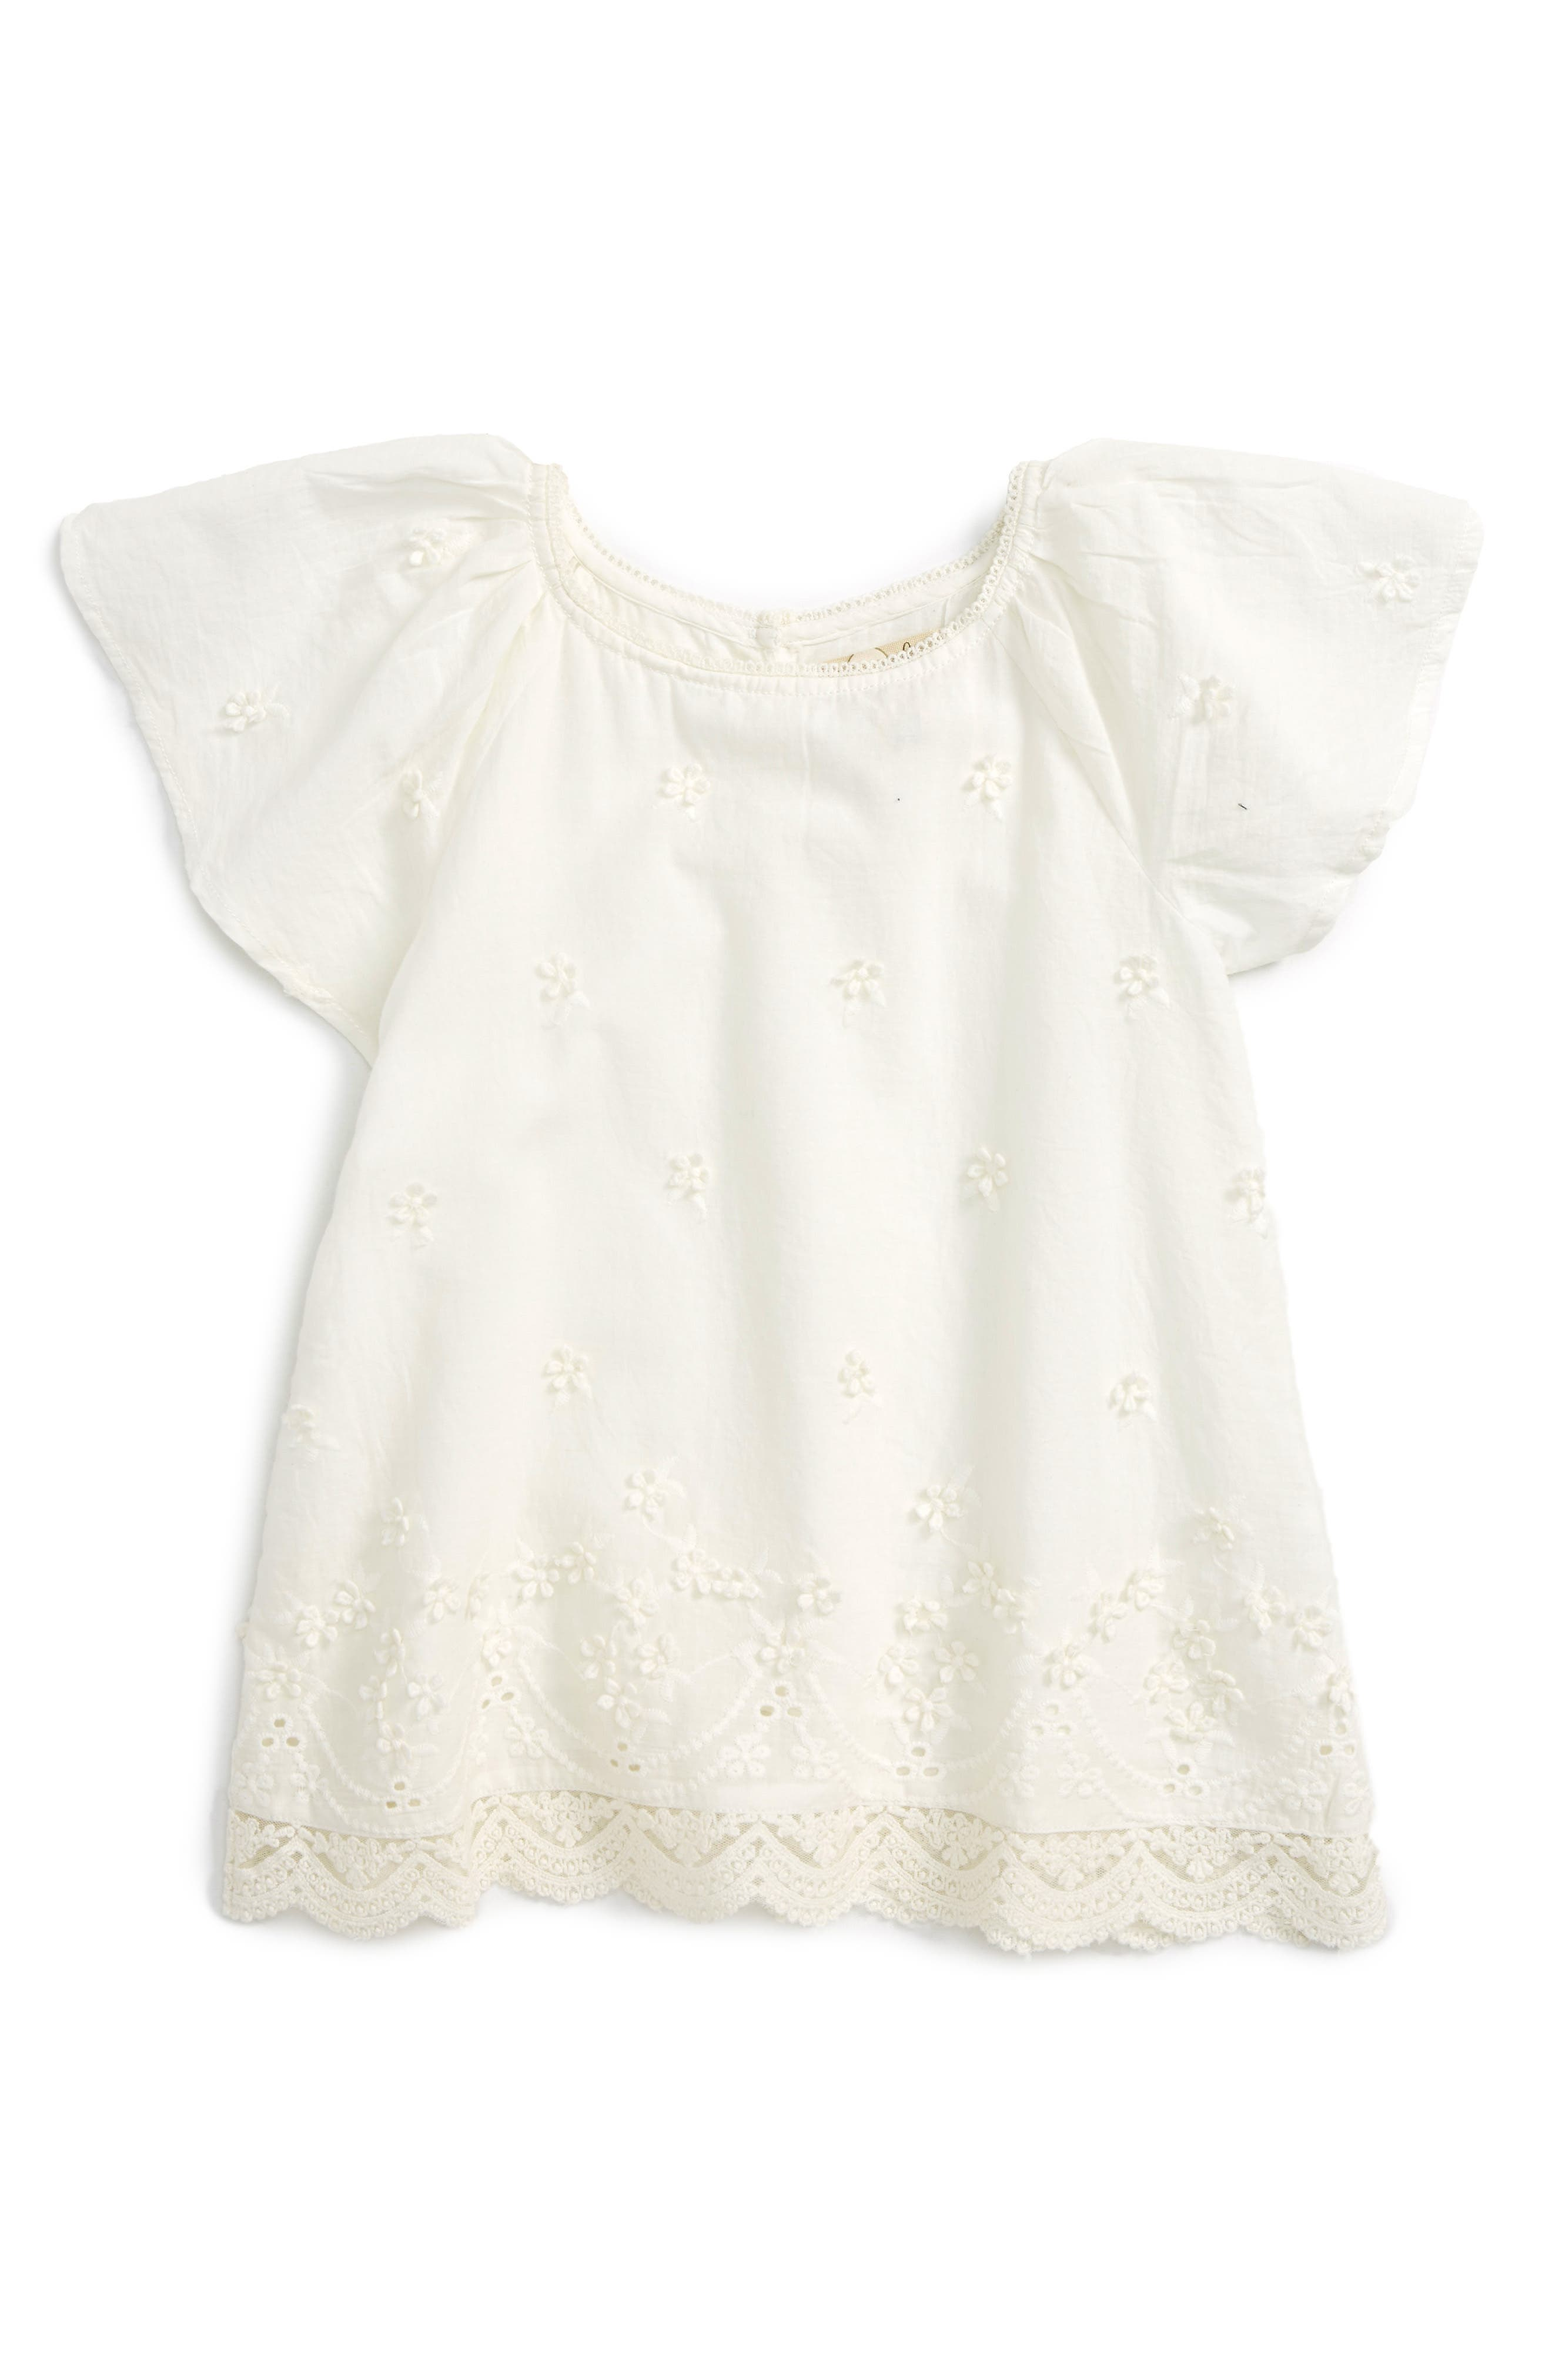 Peek Frances Flutter Sleeve Top (Toddler Girls, Little Girls & Big Girls)